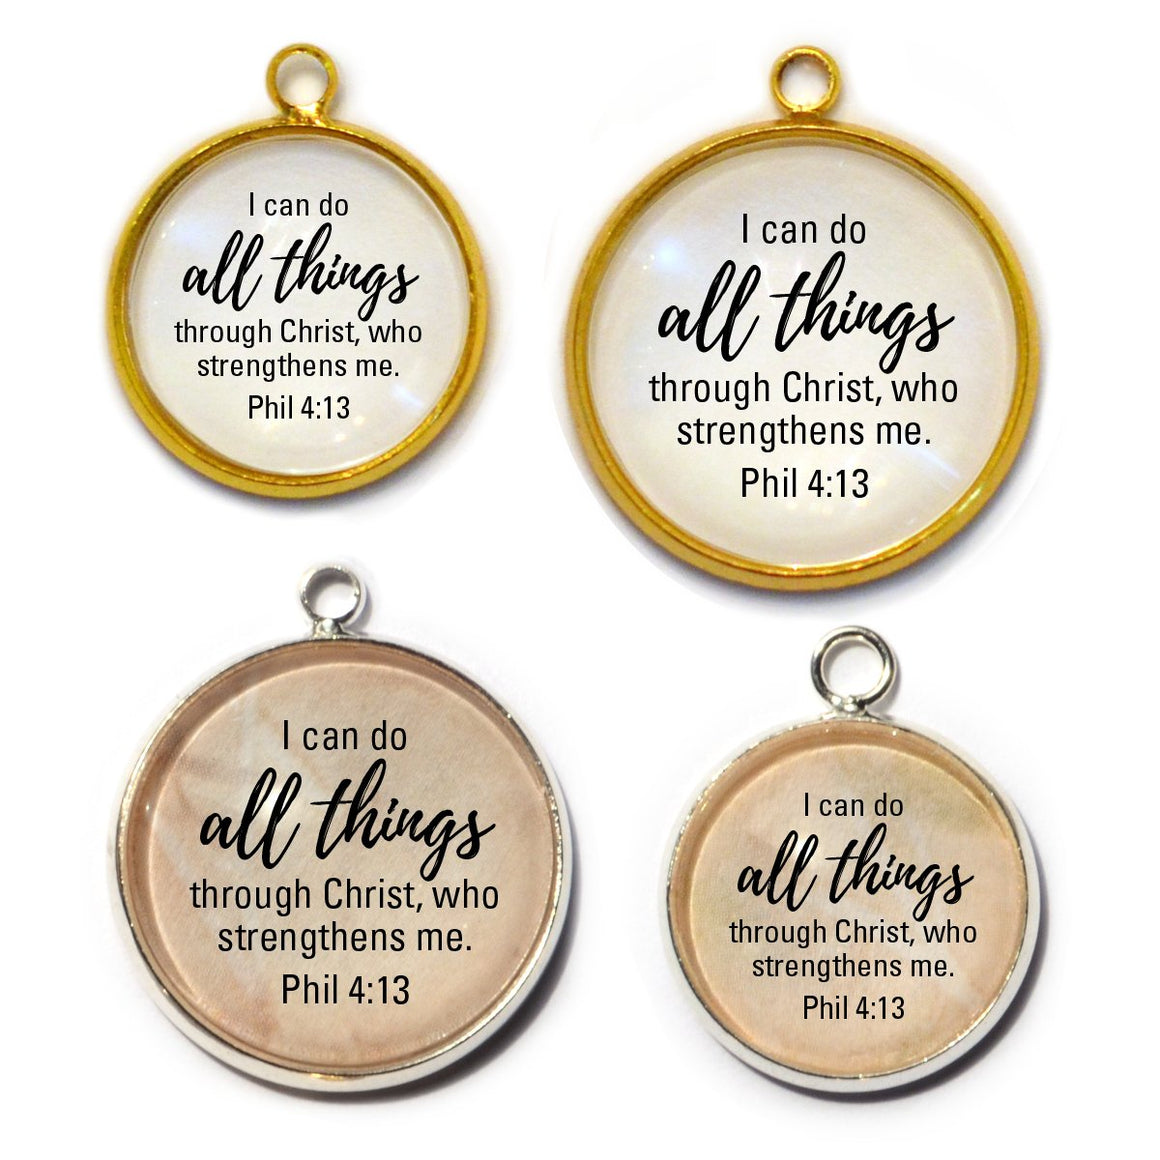 I Can Do All Things Through Christ – Philippians 4:13 Bible Verse Charms for Jewelry Making